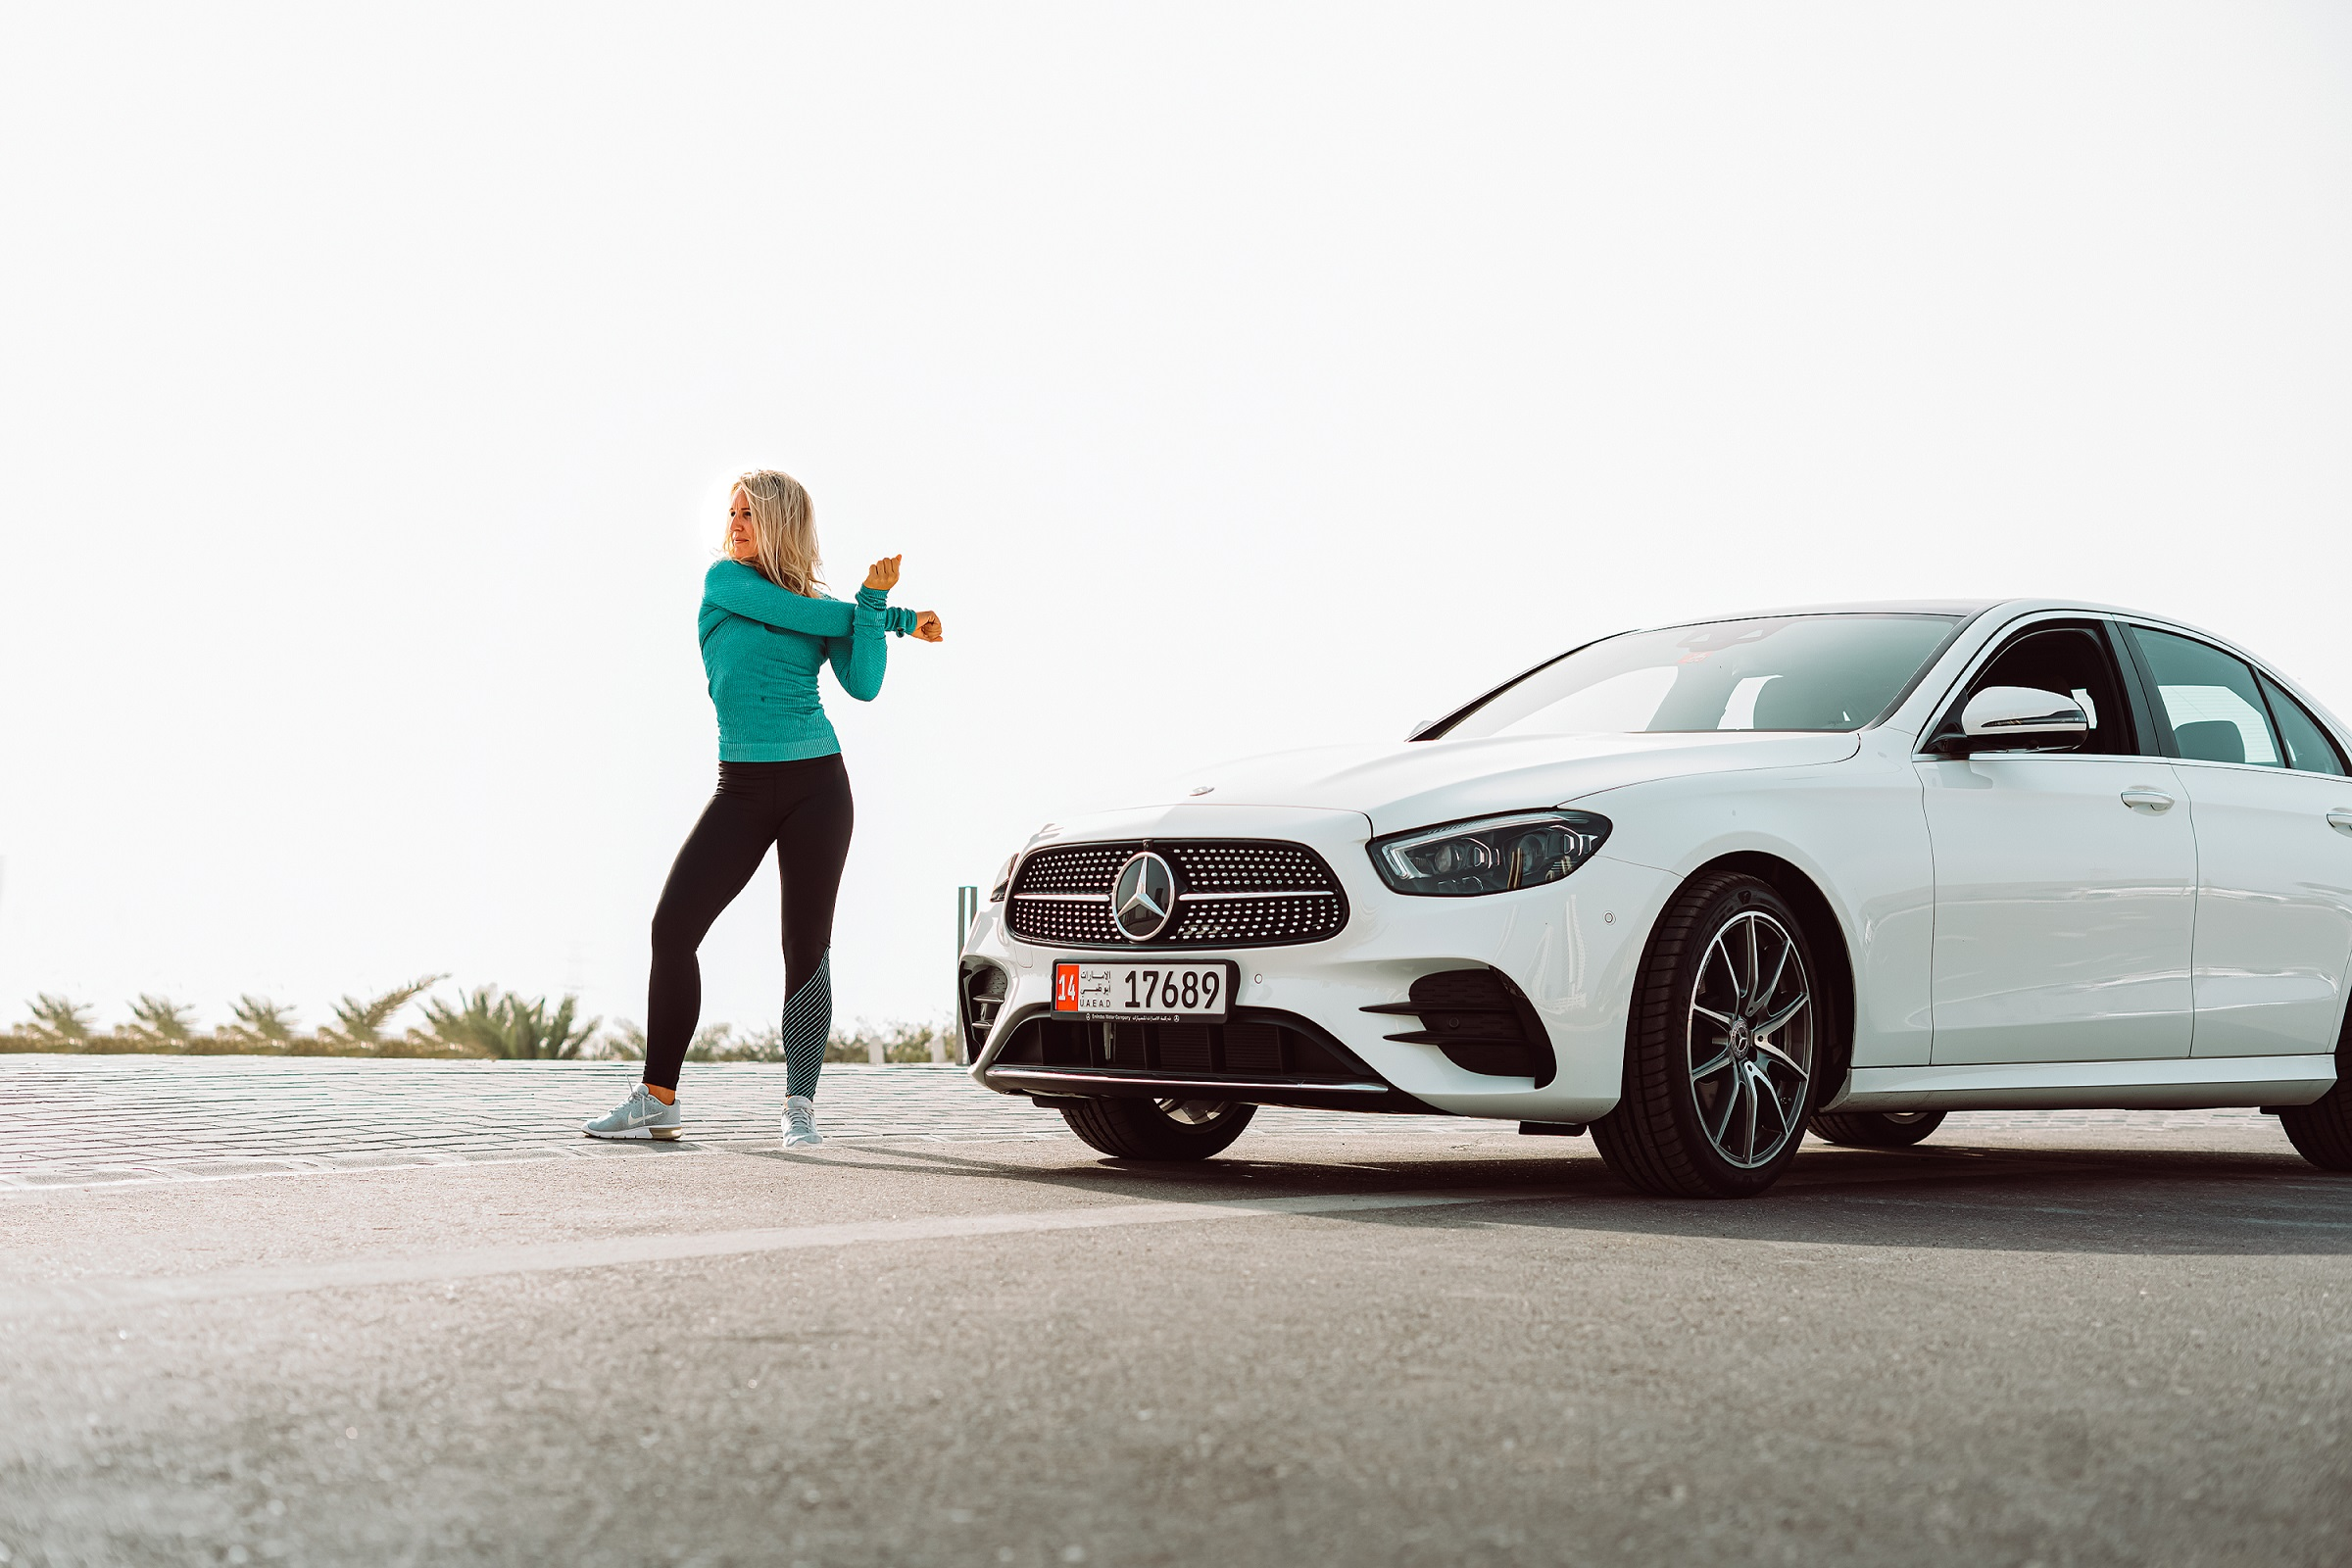 Emirates Motor Company Celebrates Women in Abu Dhabi with She's Mercedes Activation